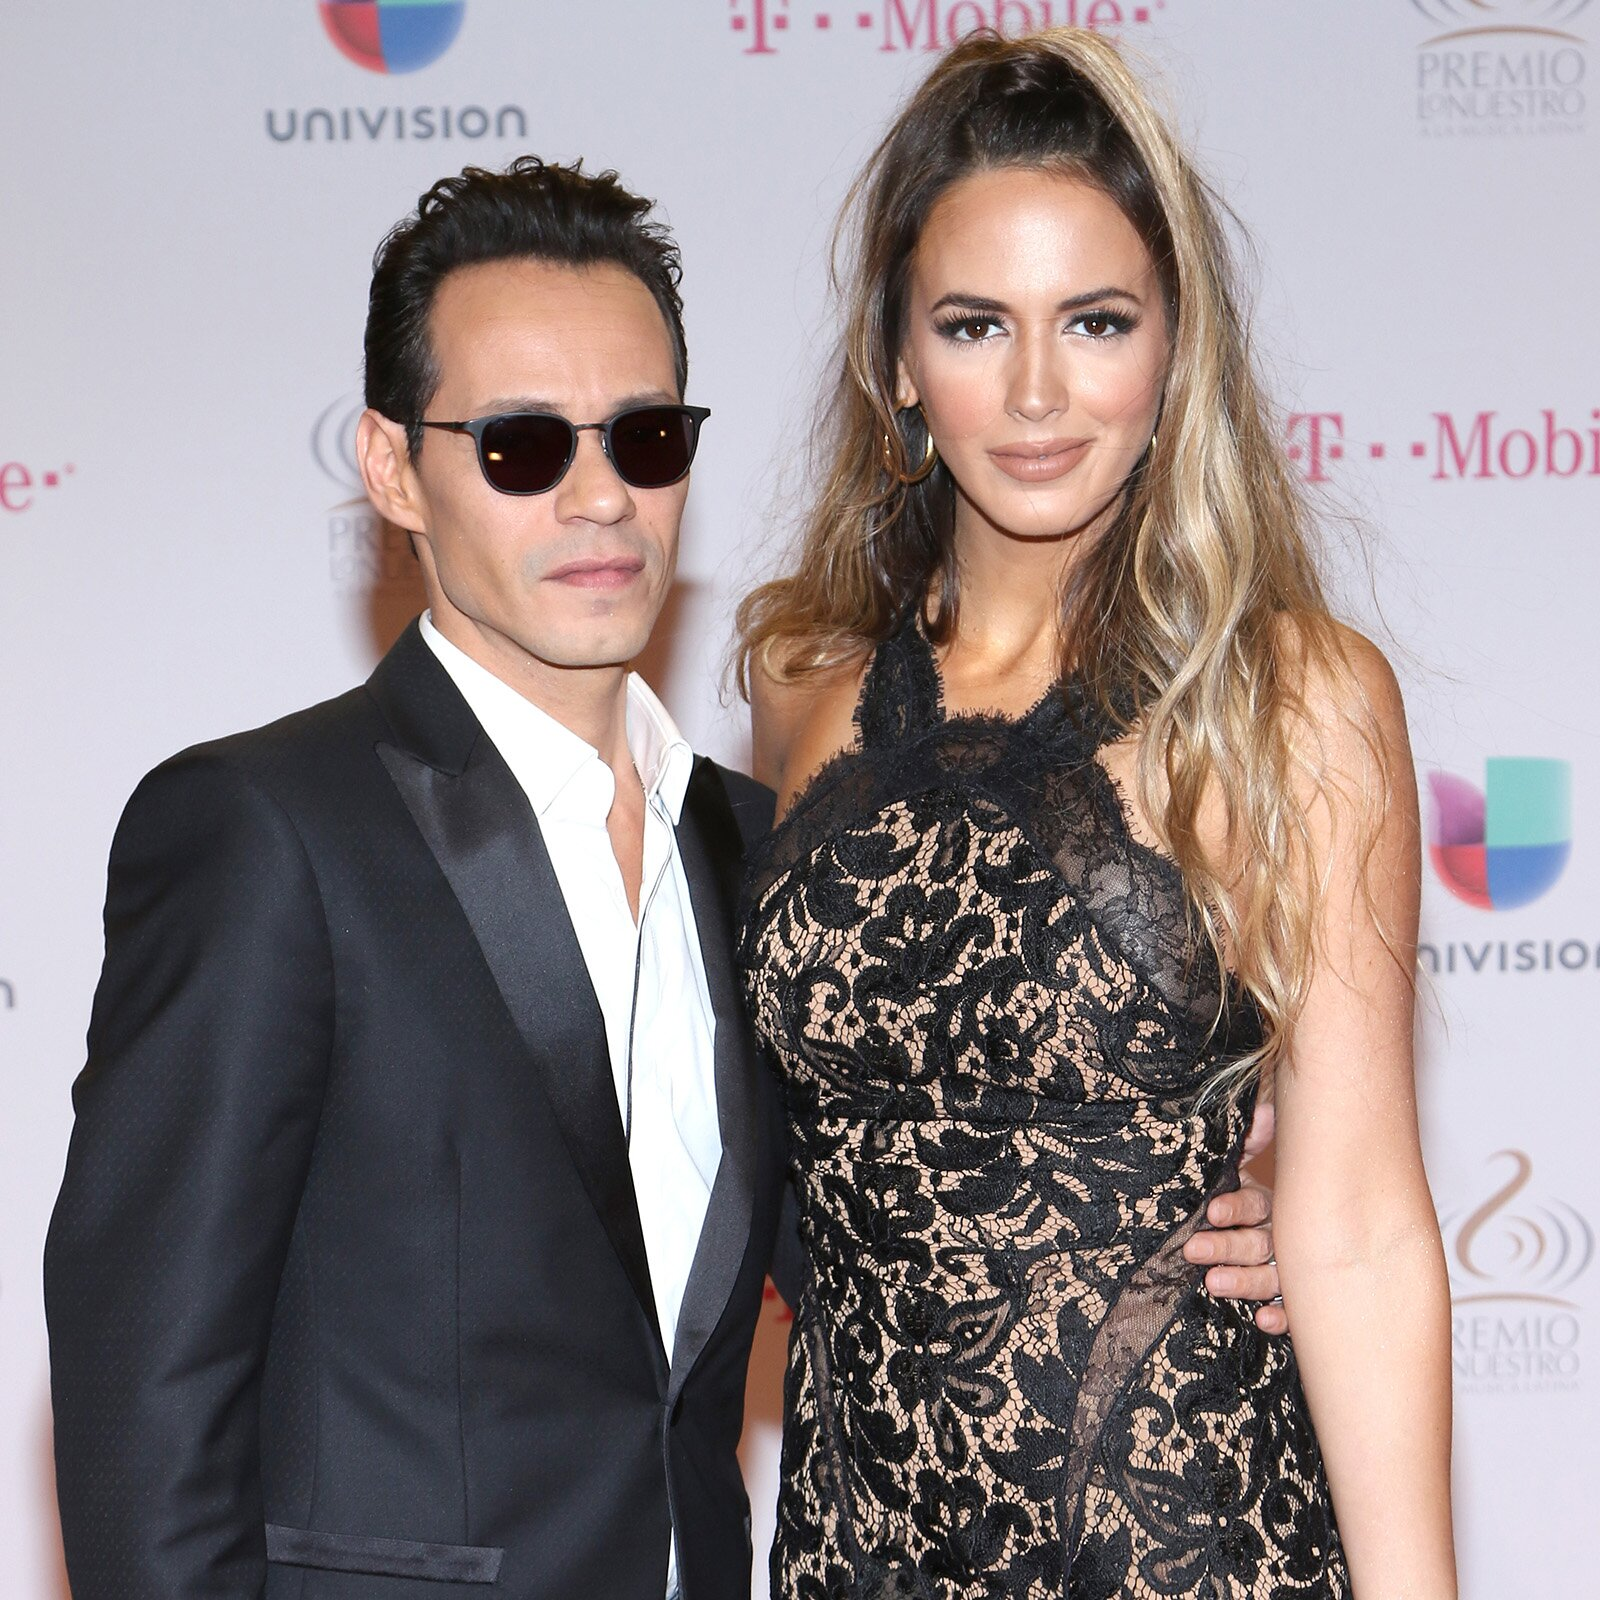 Marc Anthony Will Pay 10 000 A Month To Shannon De Lima People En Espanol